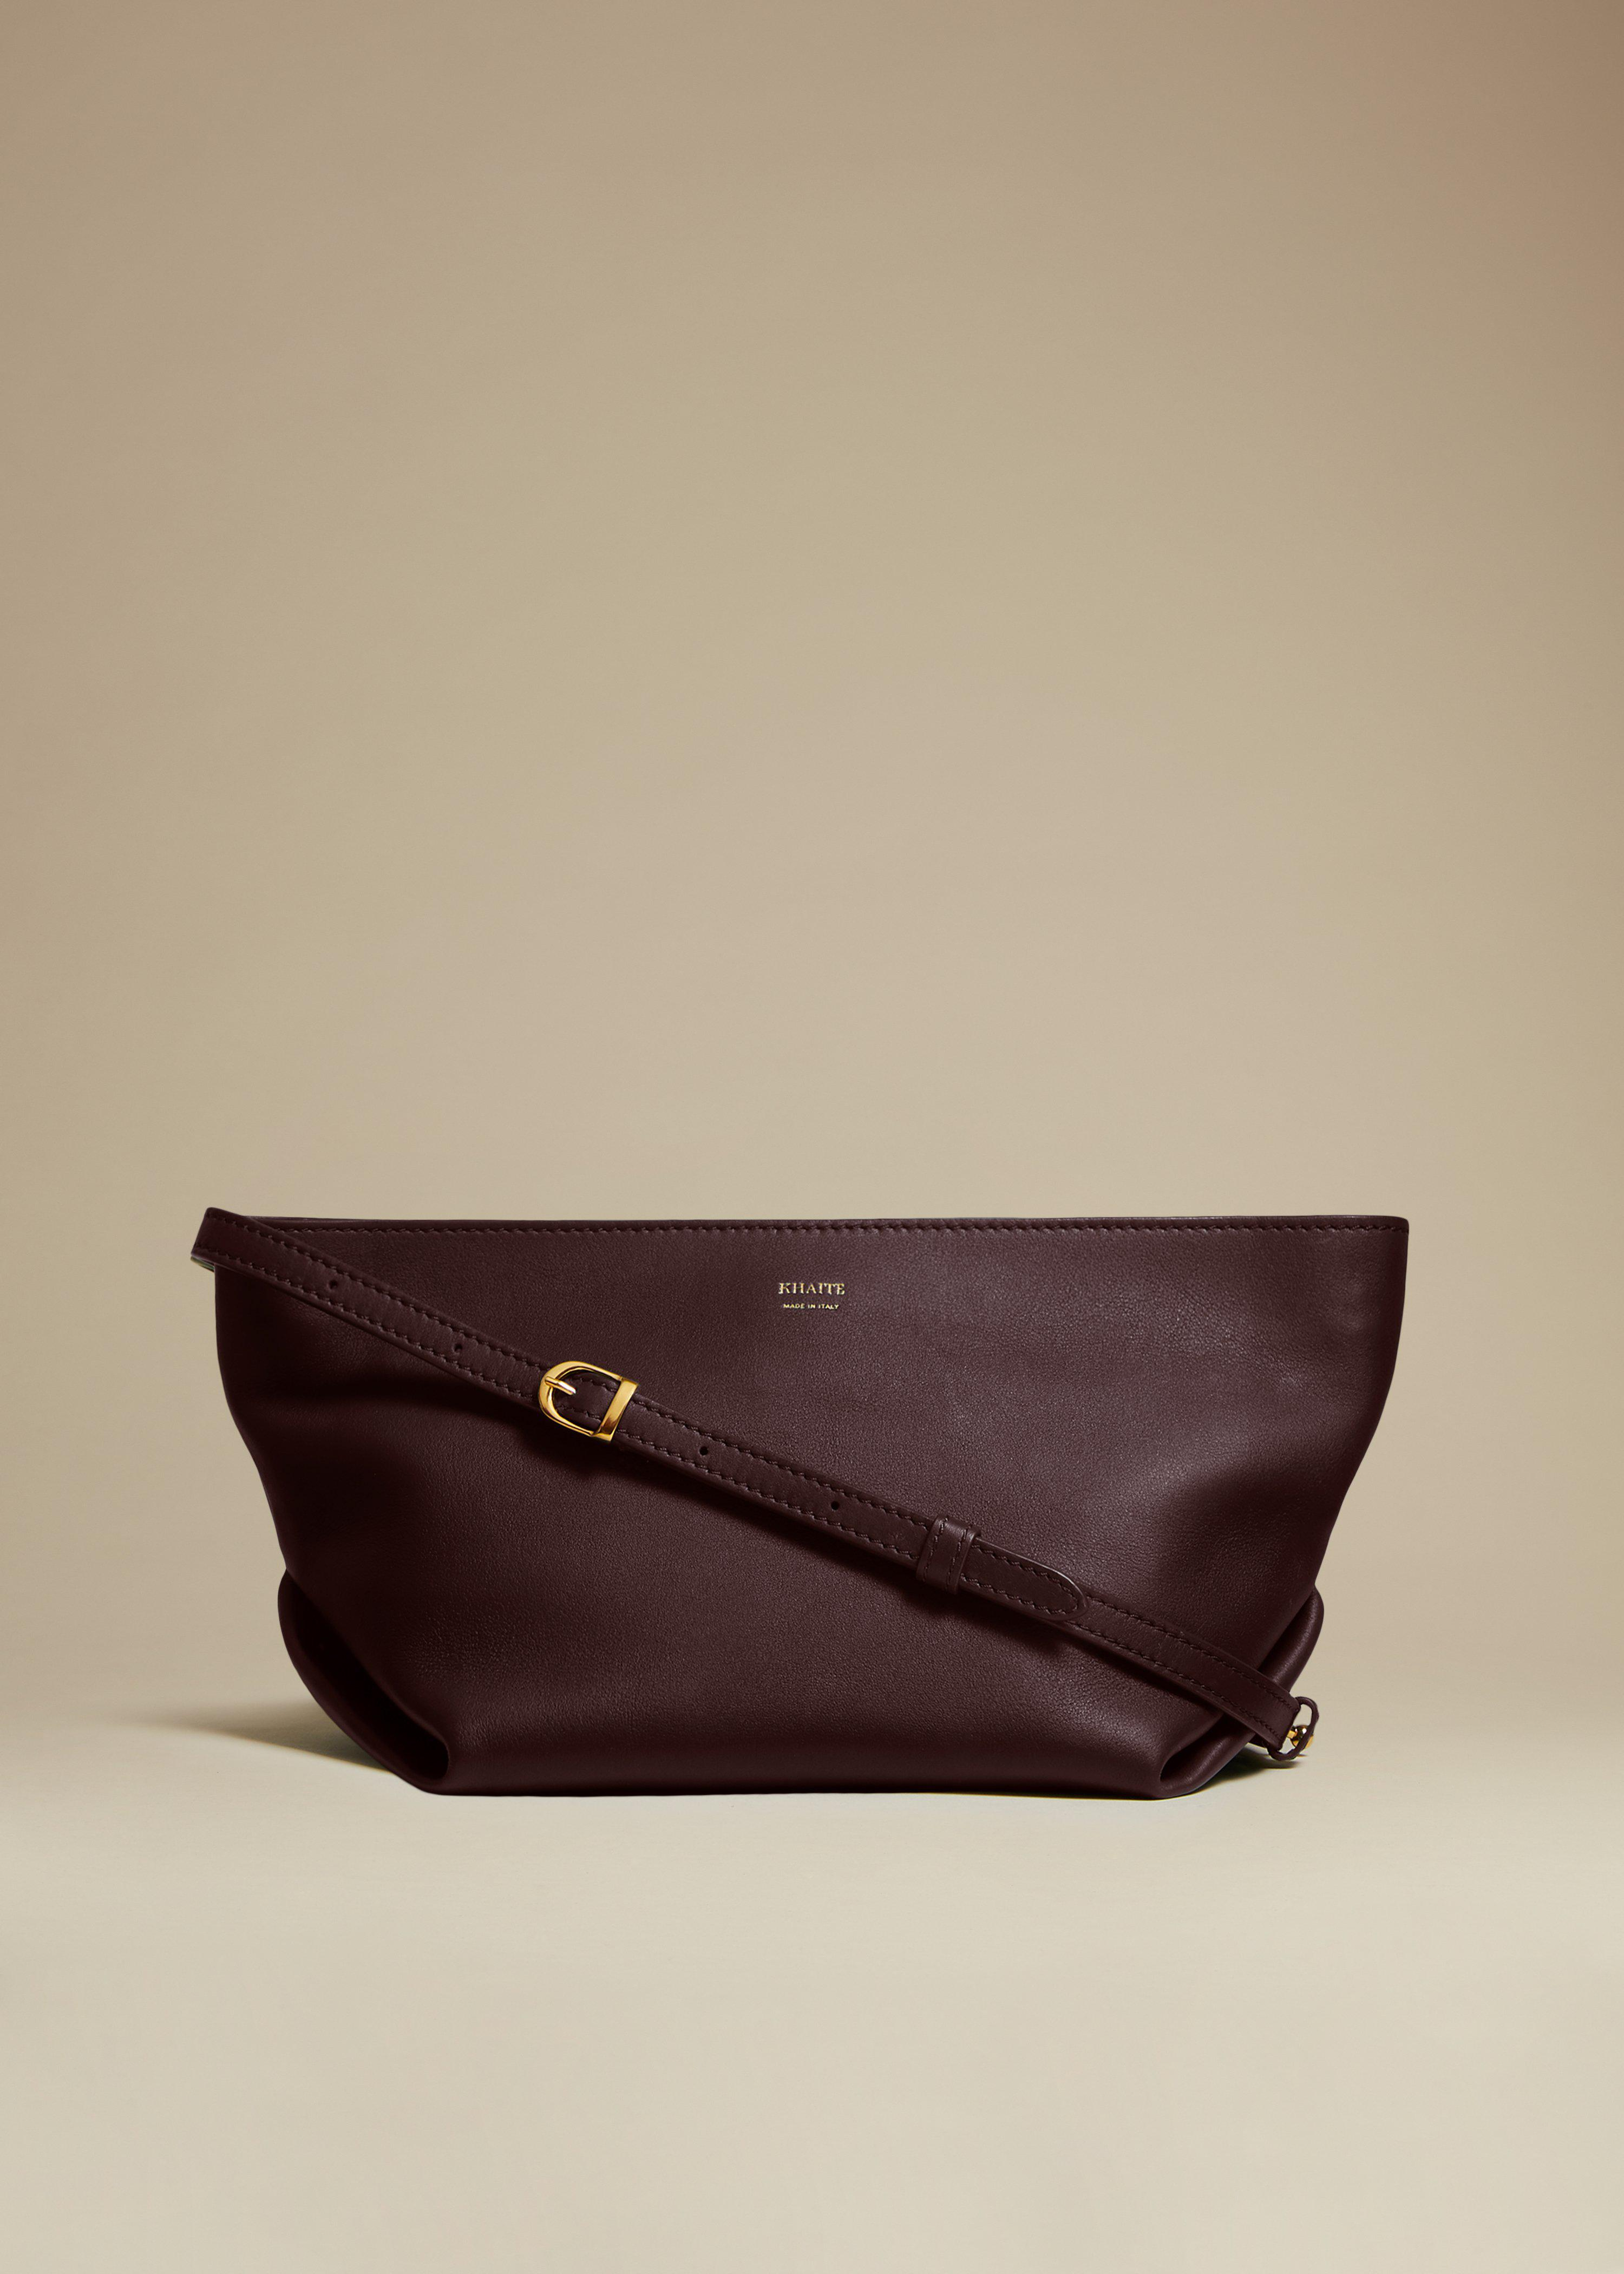 The Adeline Crossbody Bag in Deep Red Leather